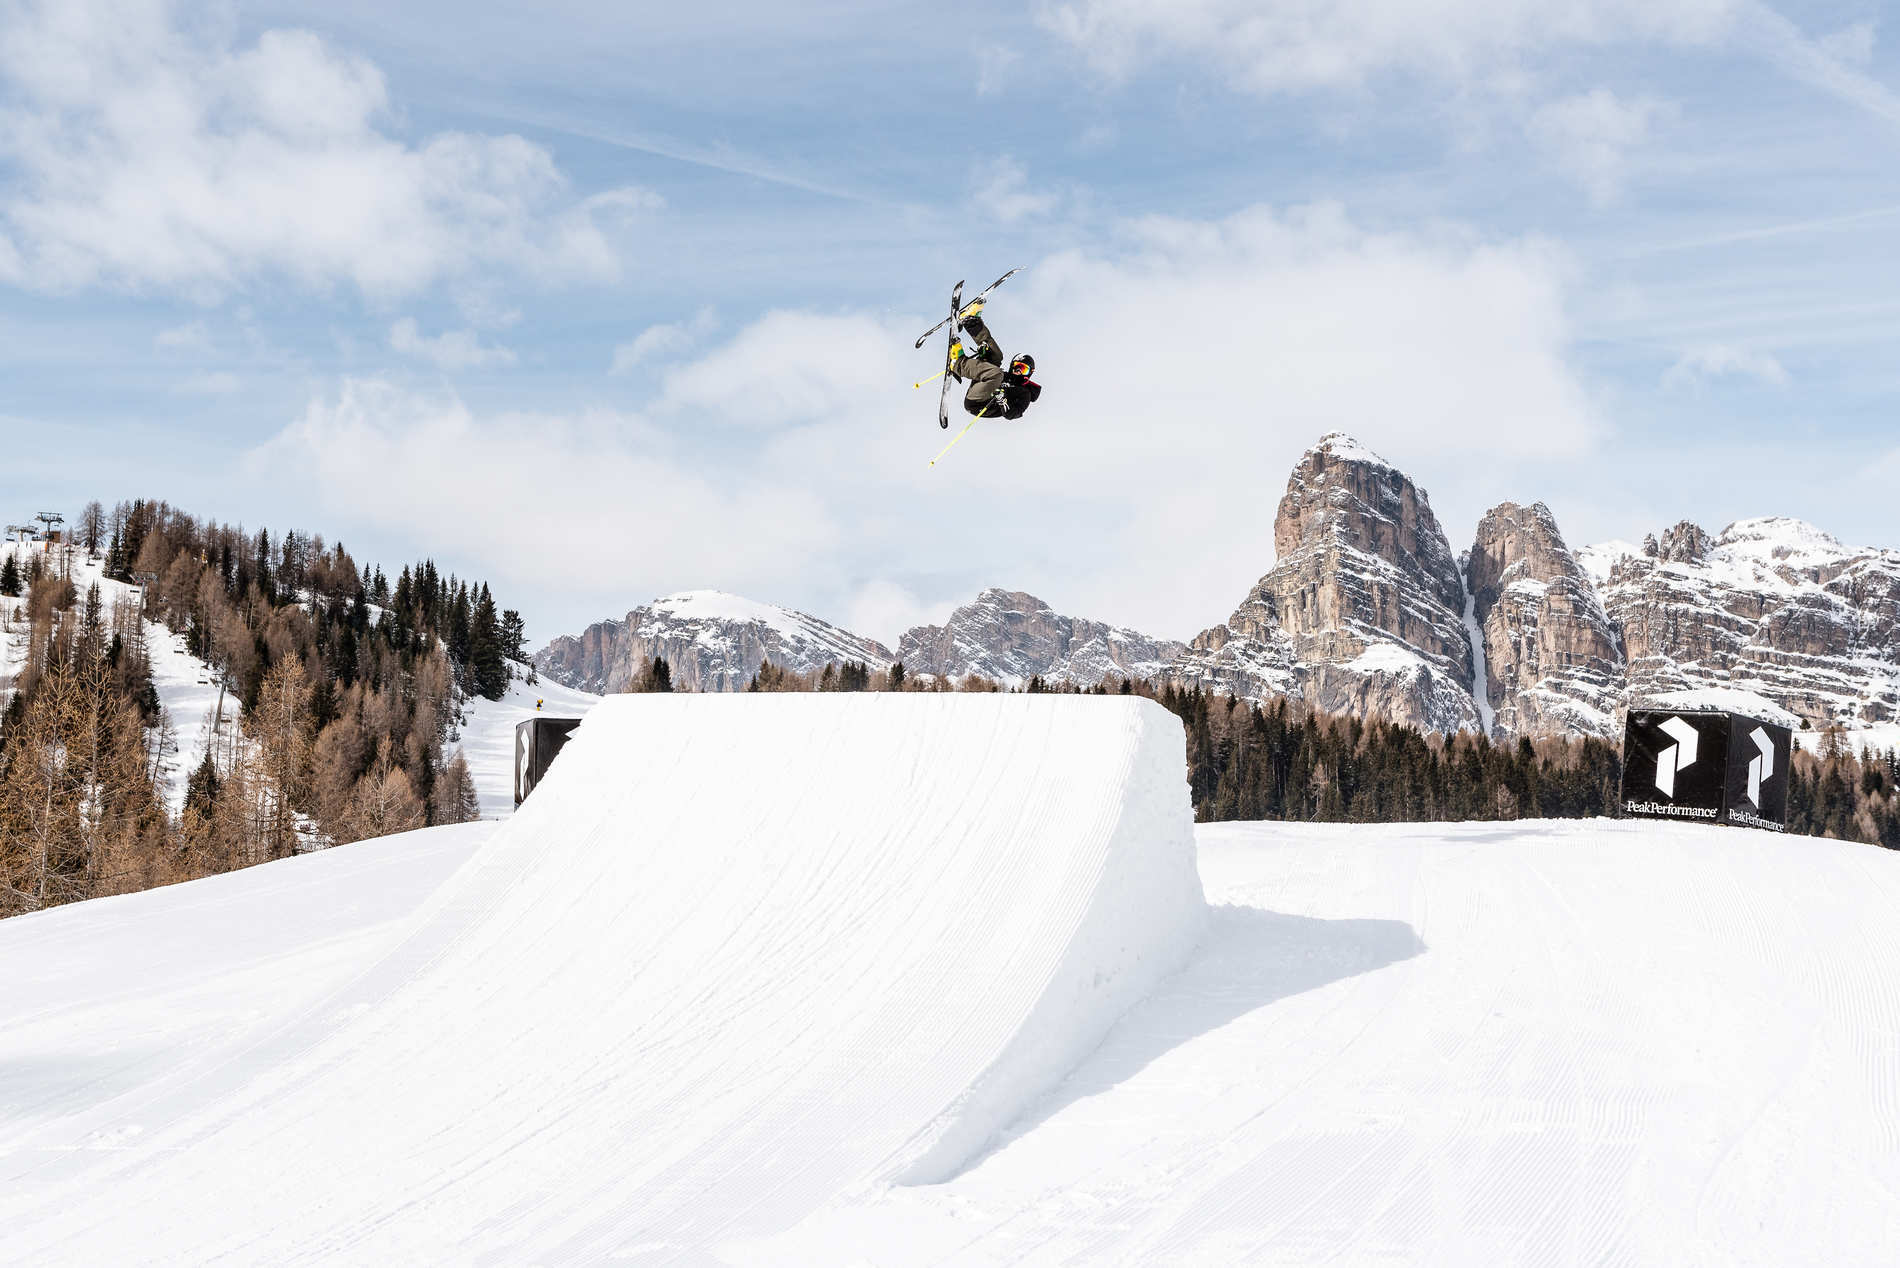 alta badia 09 03 2019 action fs unknown rider christian riefenberg qparks 13